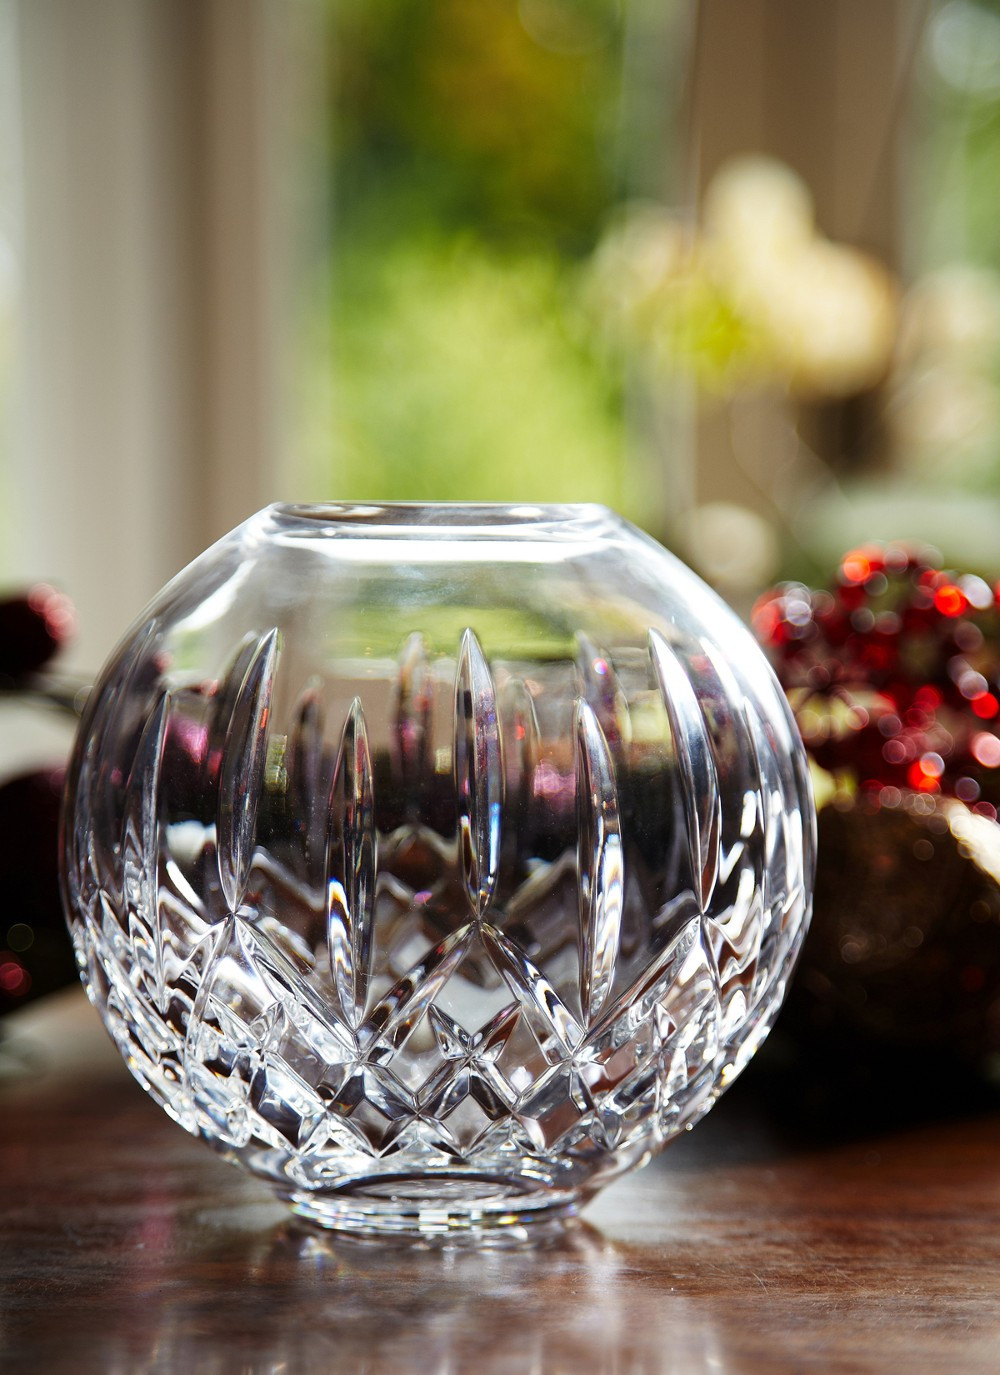 28 Unique Waterford Lismore Vase 10 Inch 2021 free download waterford lismore vase 10 inch of waterford crystal vases crystal vases and bowls irish crystal vases pertaining to waterford crystal lismore 6 rose bowl